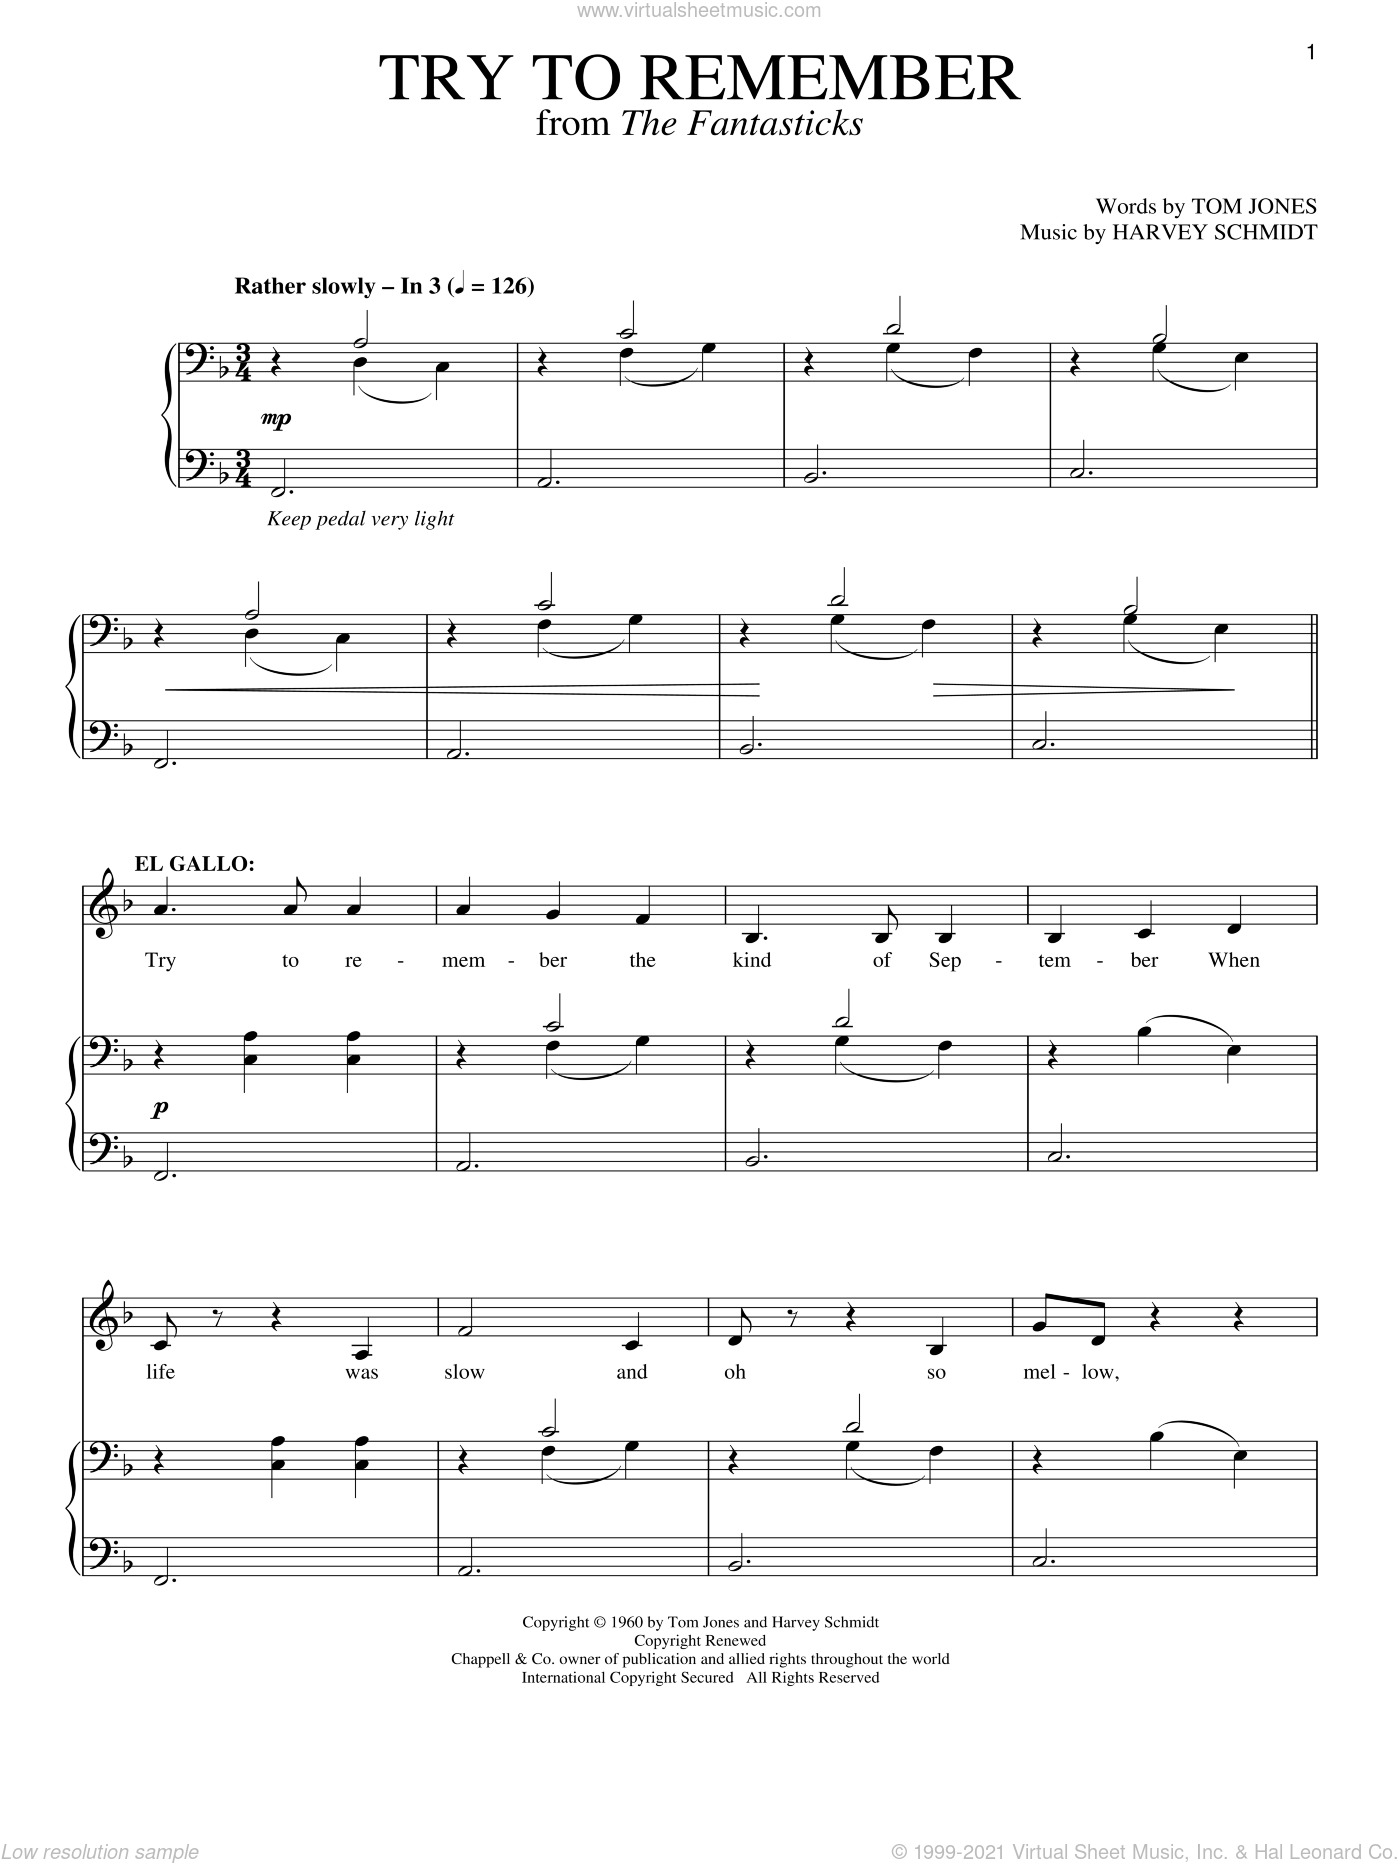 Try To Remember sheet music for voice and piano by Tom Jones and Harvey Schmidt. Score Image Preview.